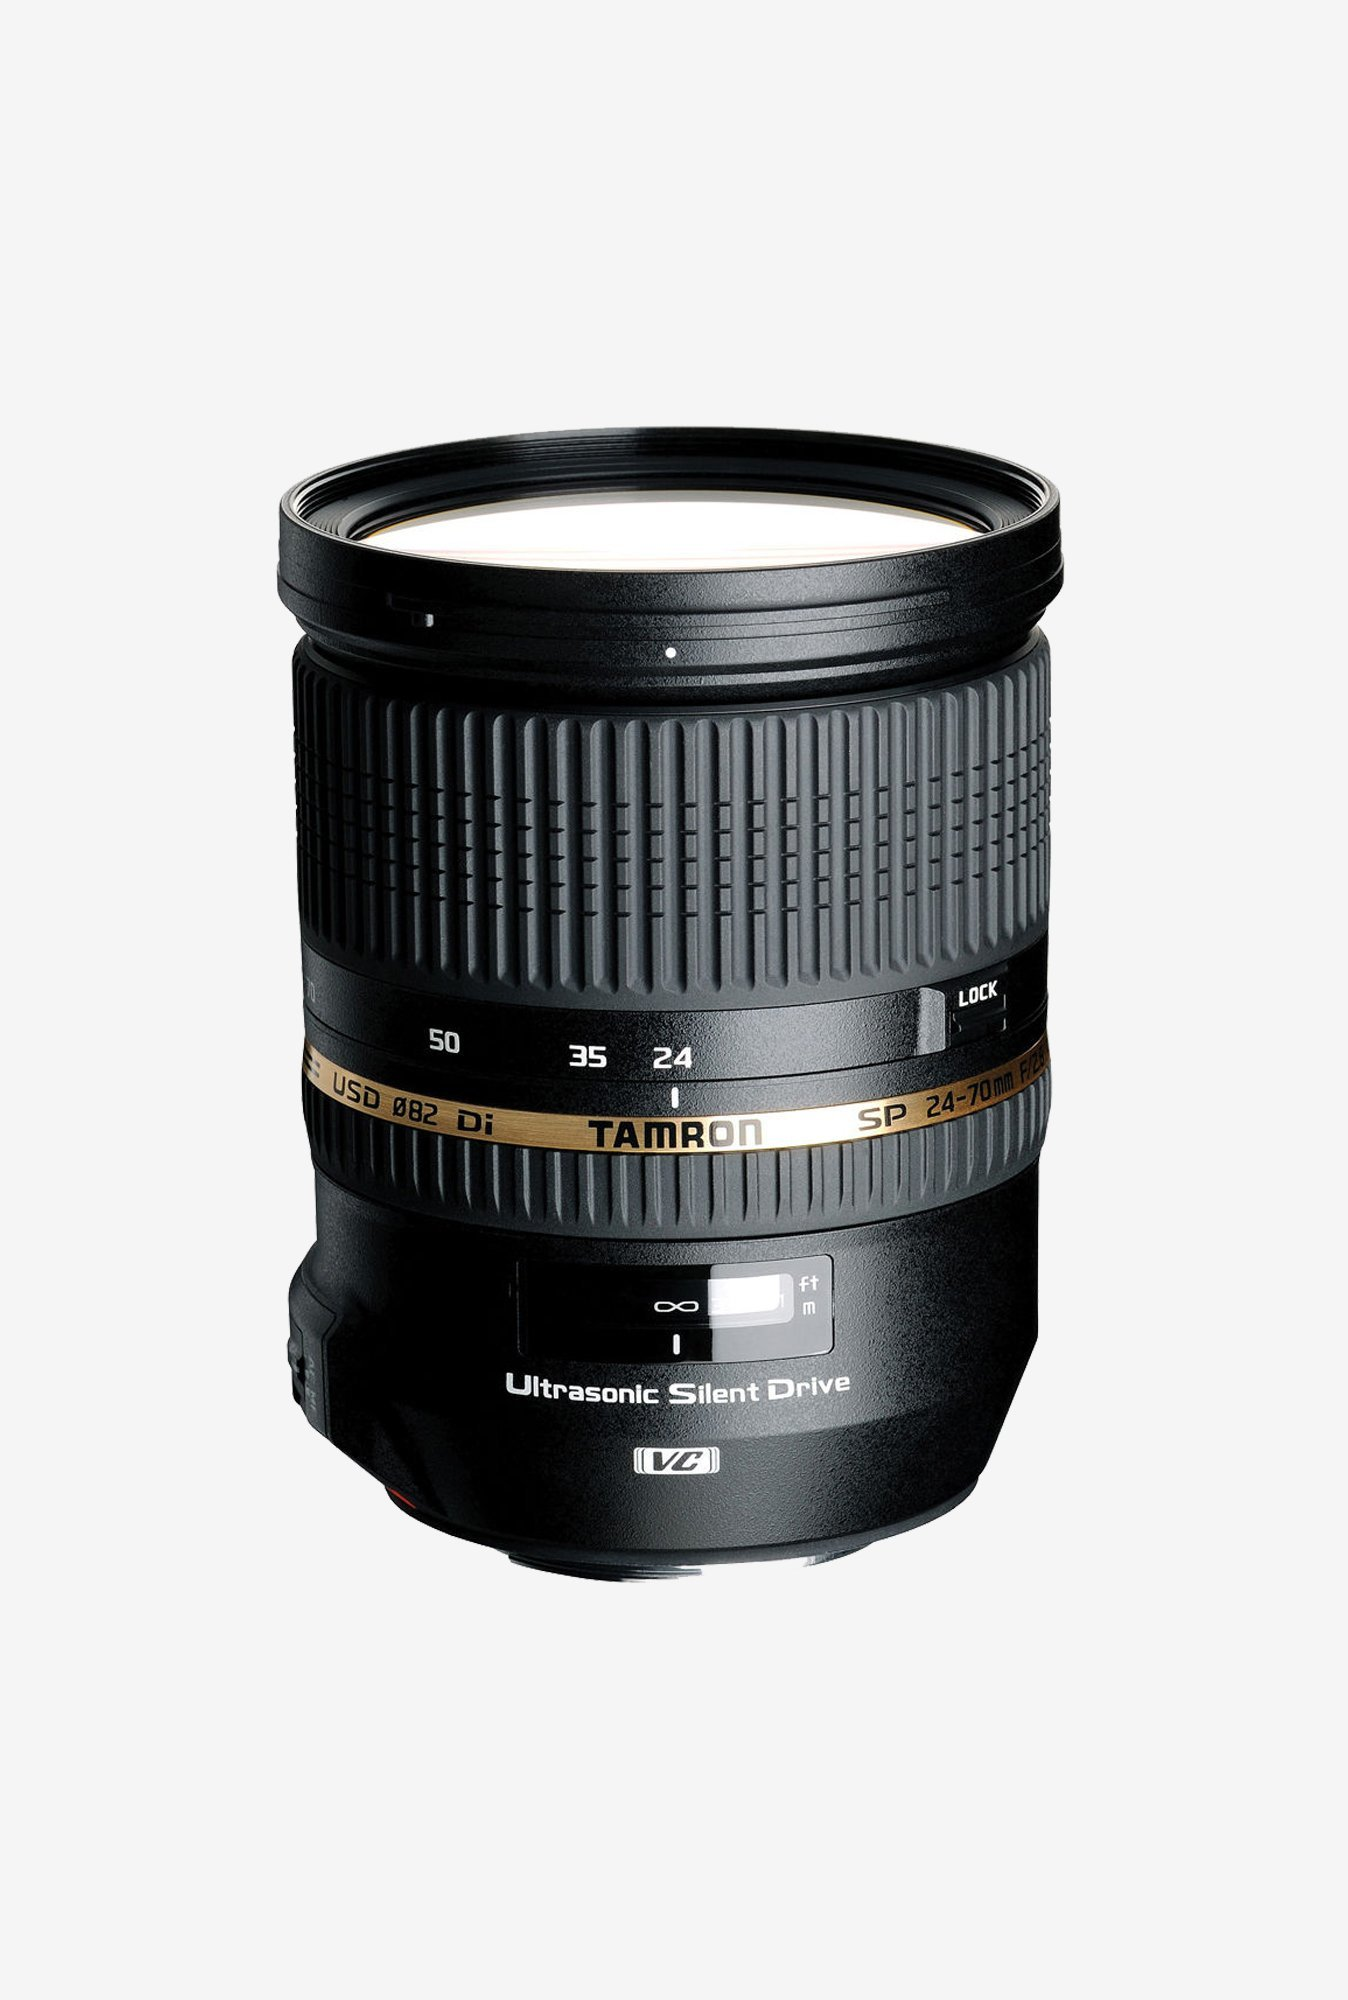 Tamron SP AF 24-70mm f/2.8 Di VC USD Lens for Nikon DSLR